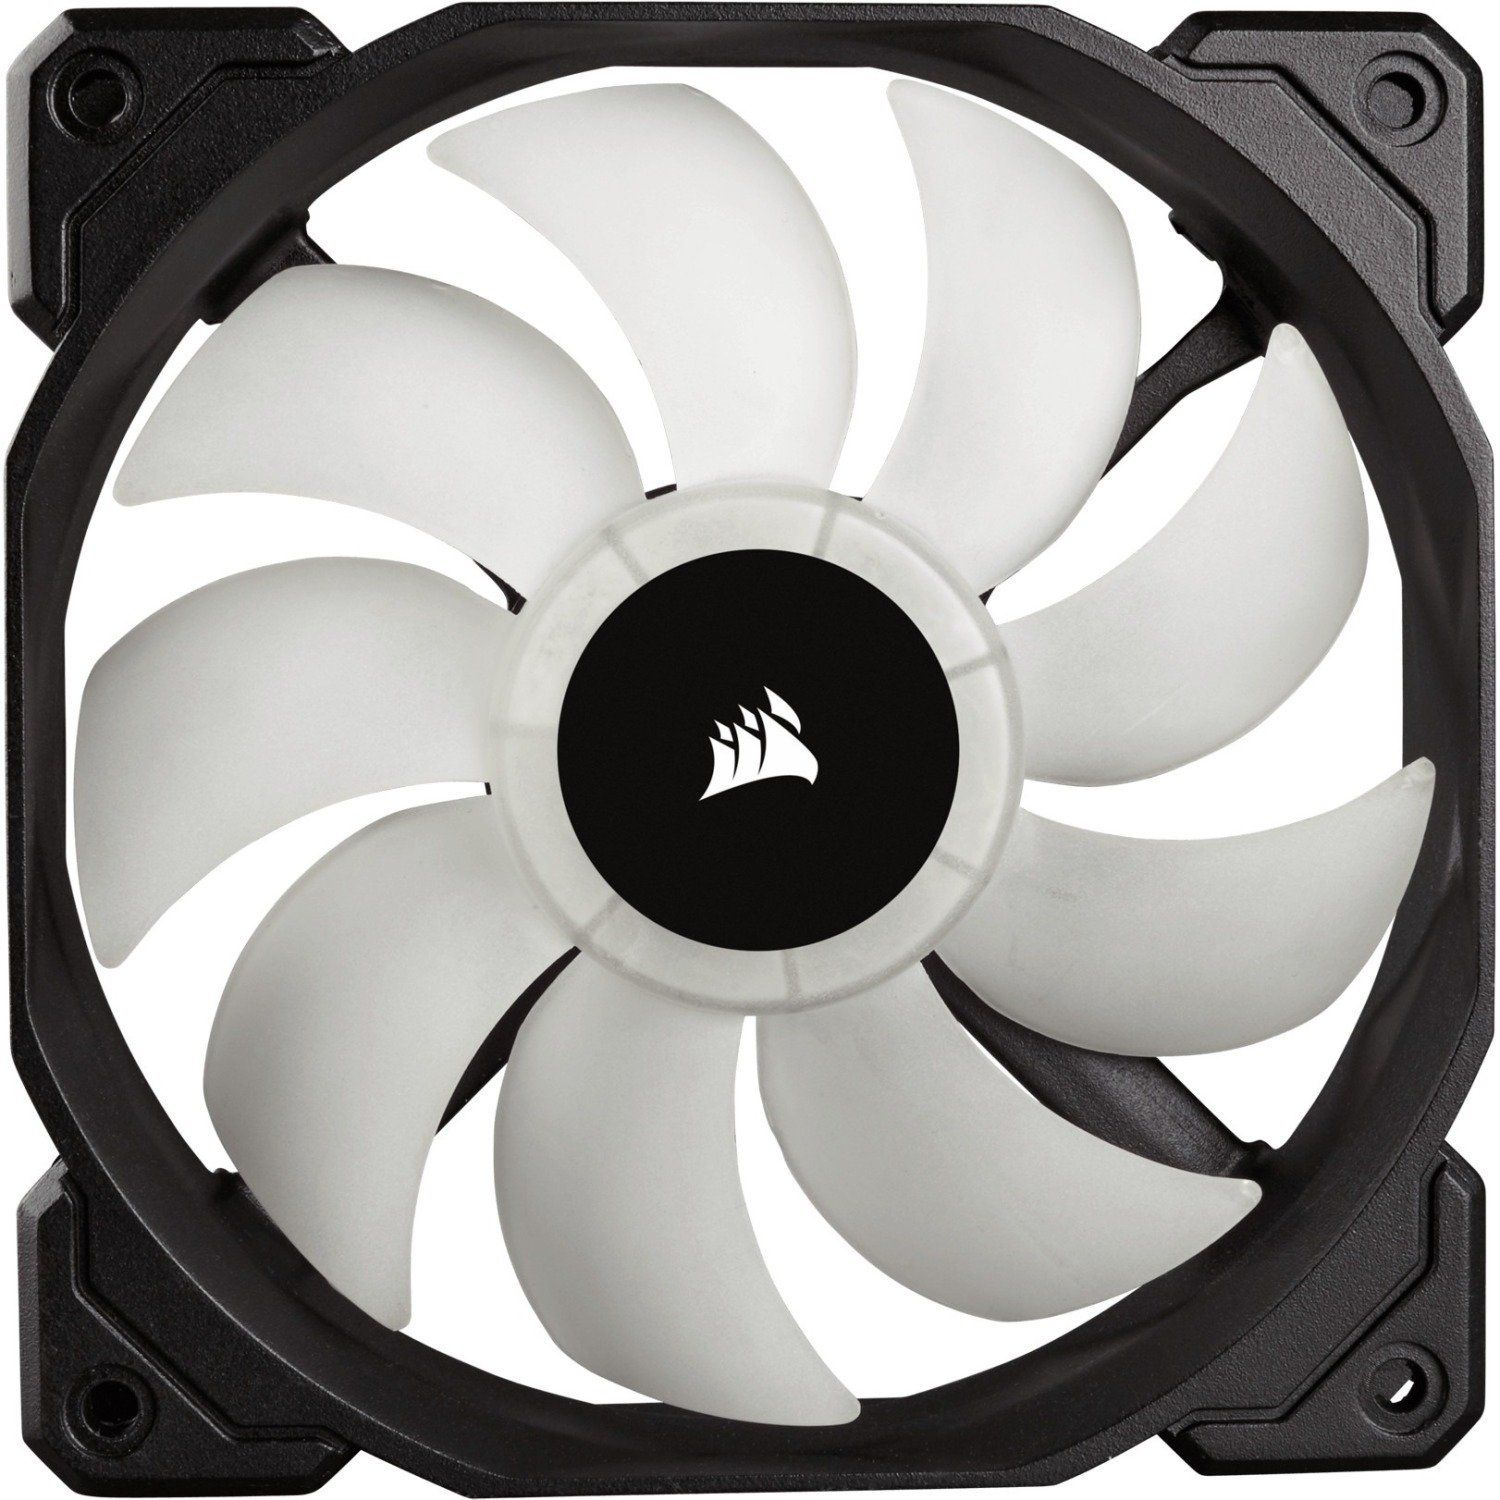 Corsair Sp120 Rgb Led High Performance 120mm Fan Three Pack With